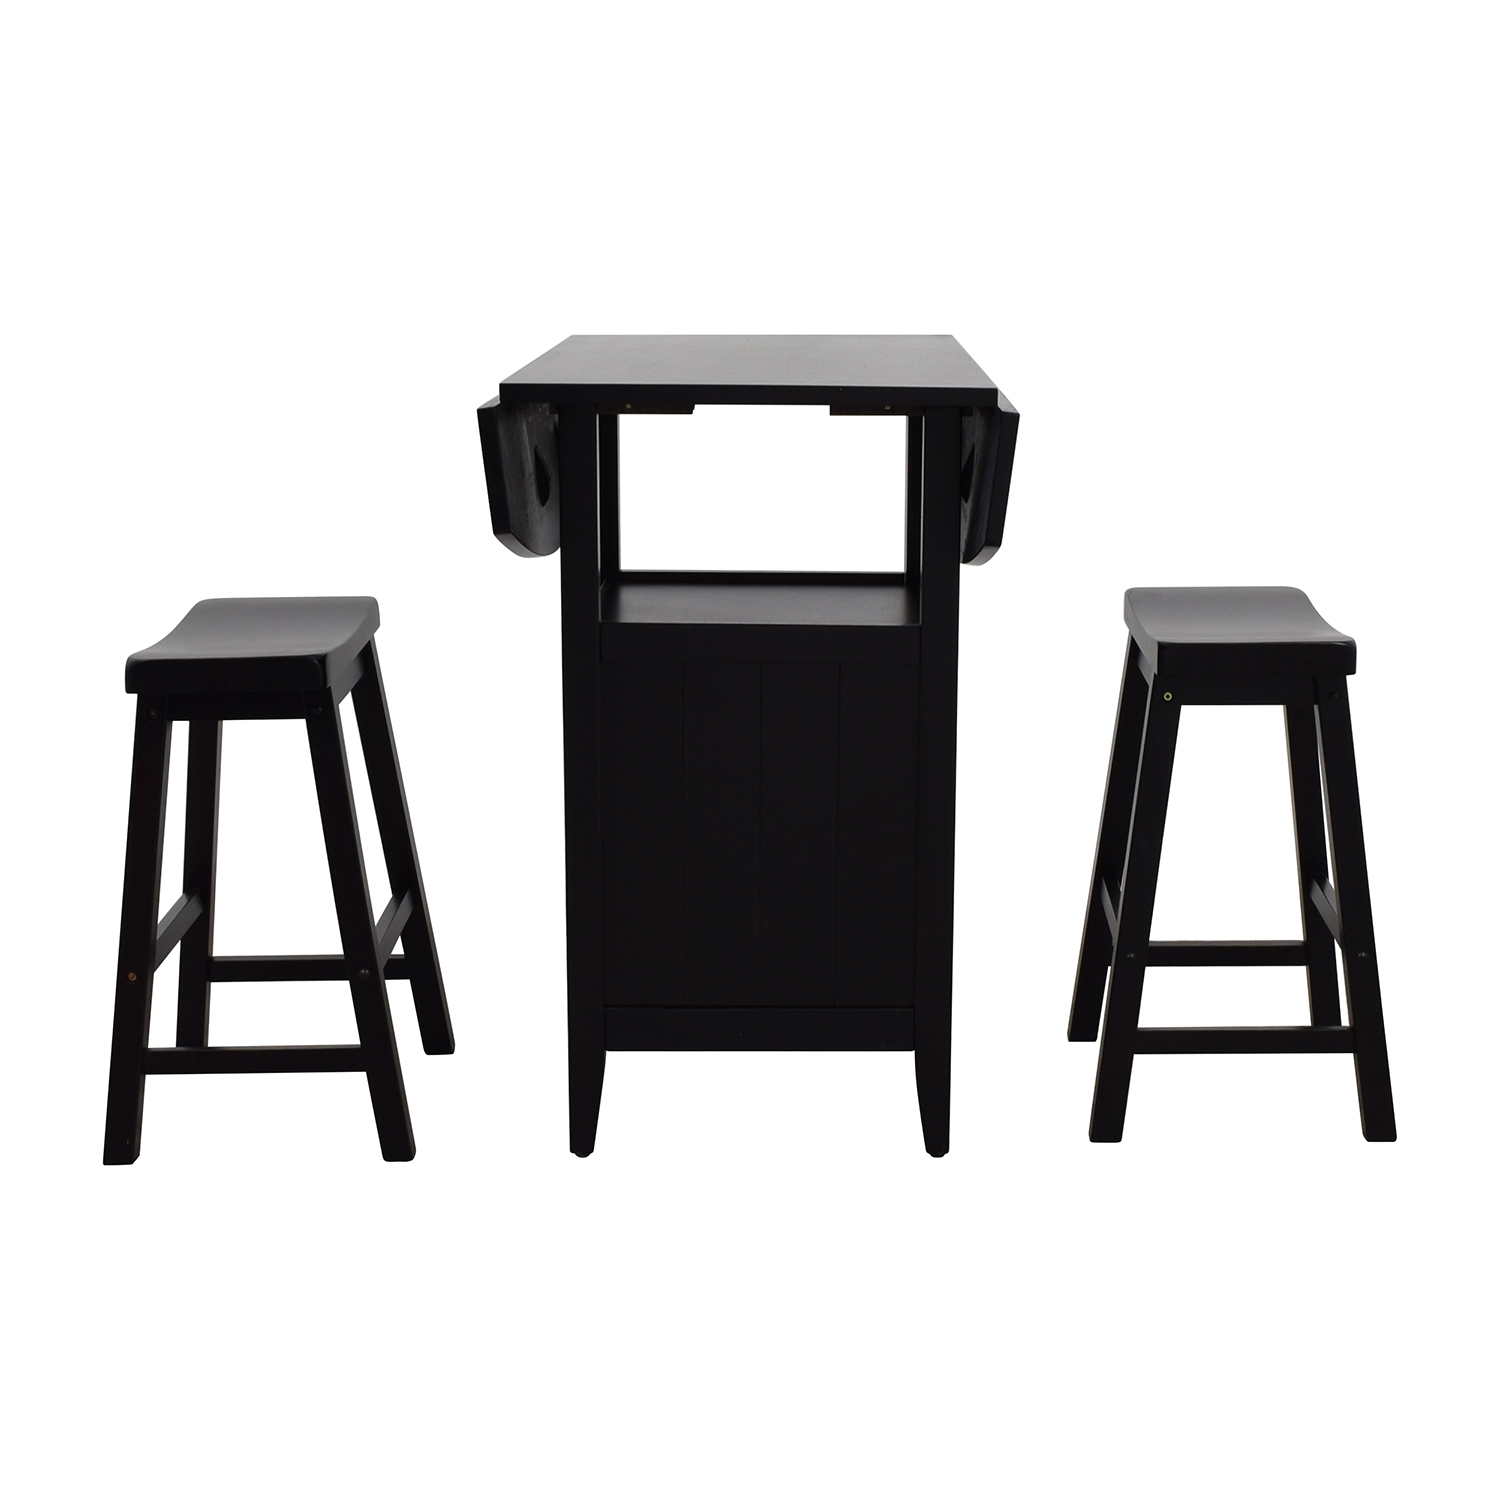 Dinette Wood Table with Storage with Two Stools discount